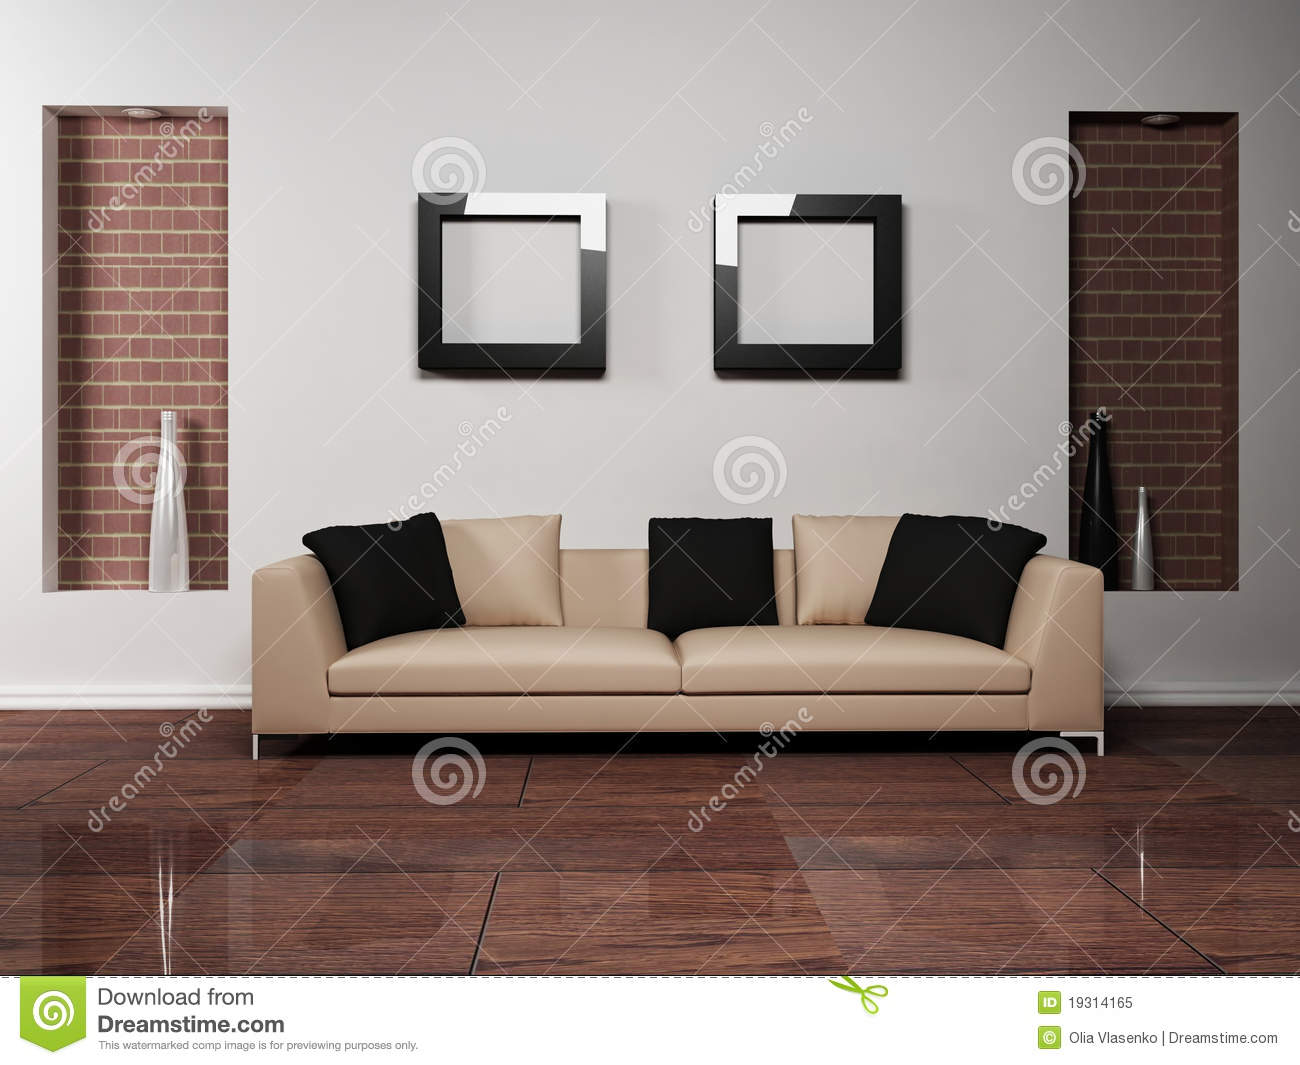 Modern Interior Design Of Living Room With Royalty Free Stock Photo